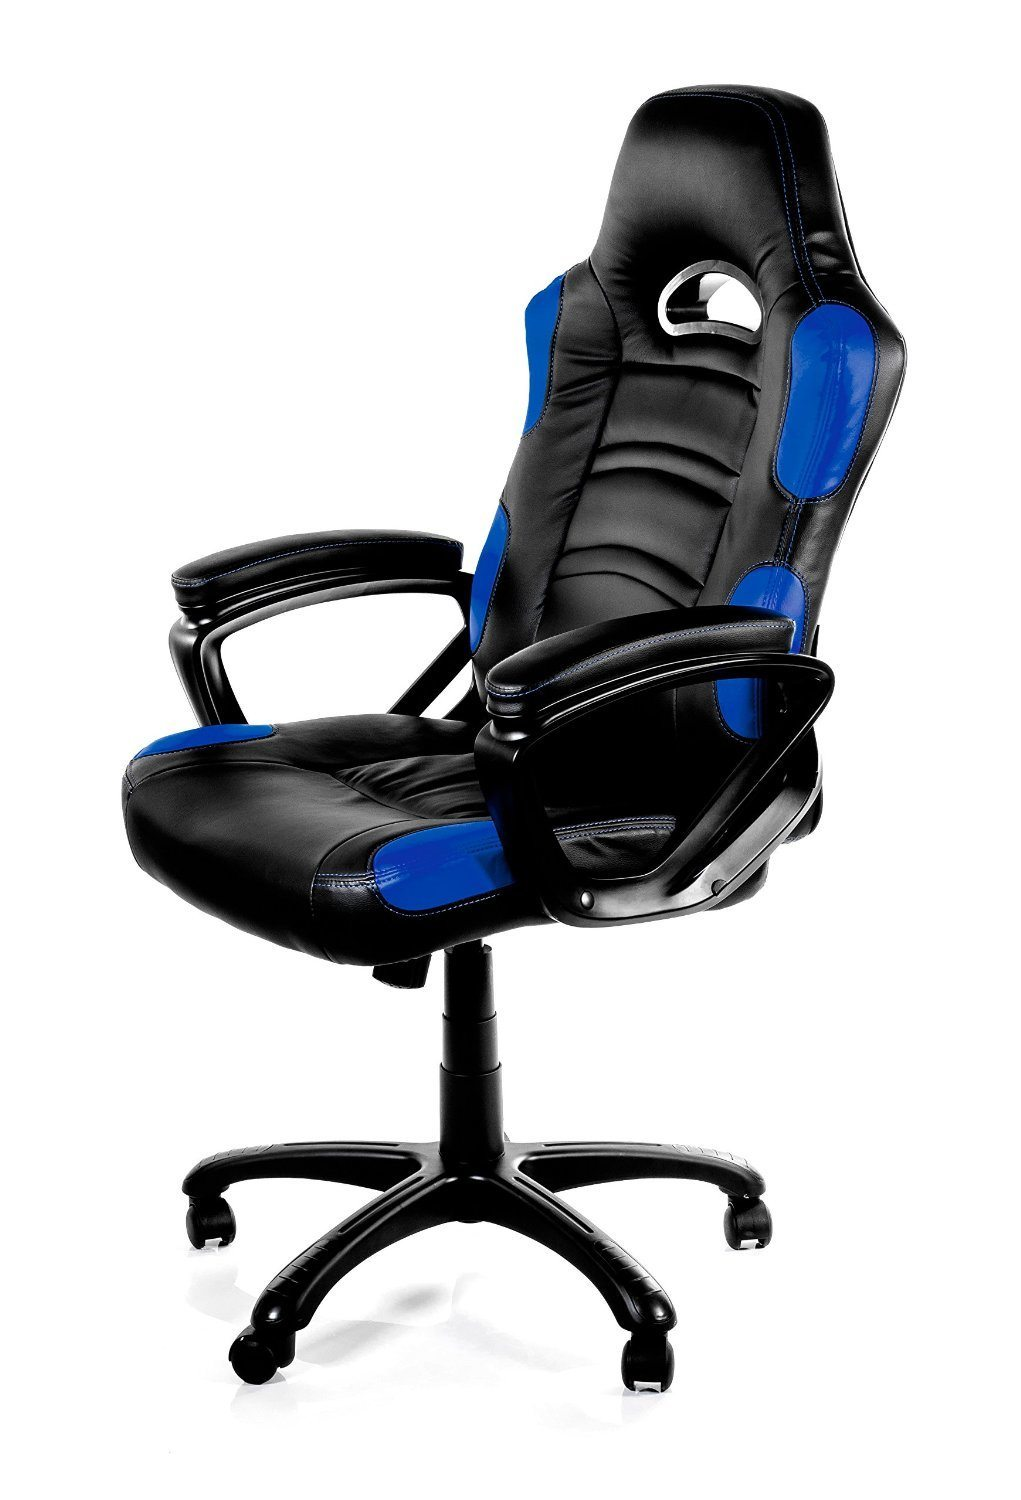 Best computer chair for gaming - Arozzi Enzo Series Gaming Racing Ergonomic